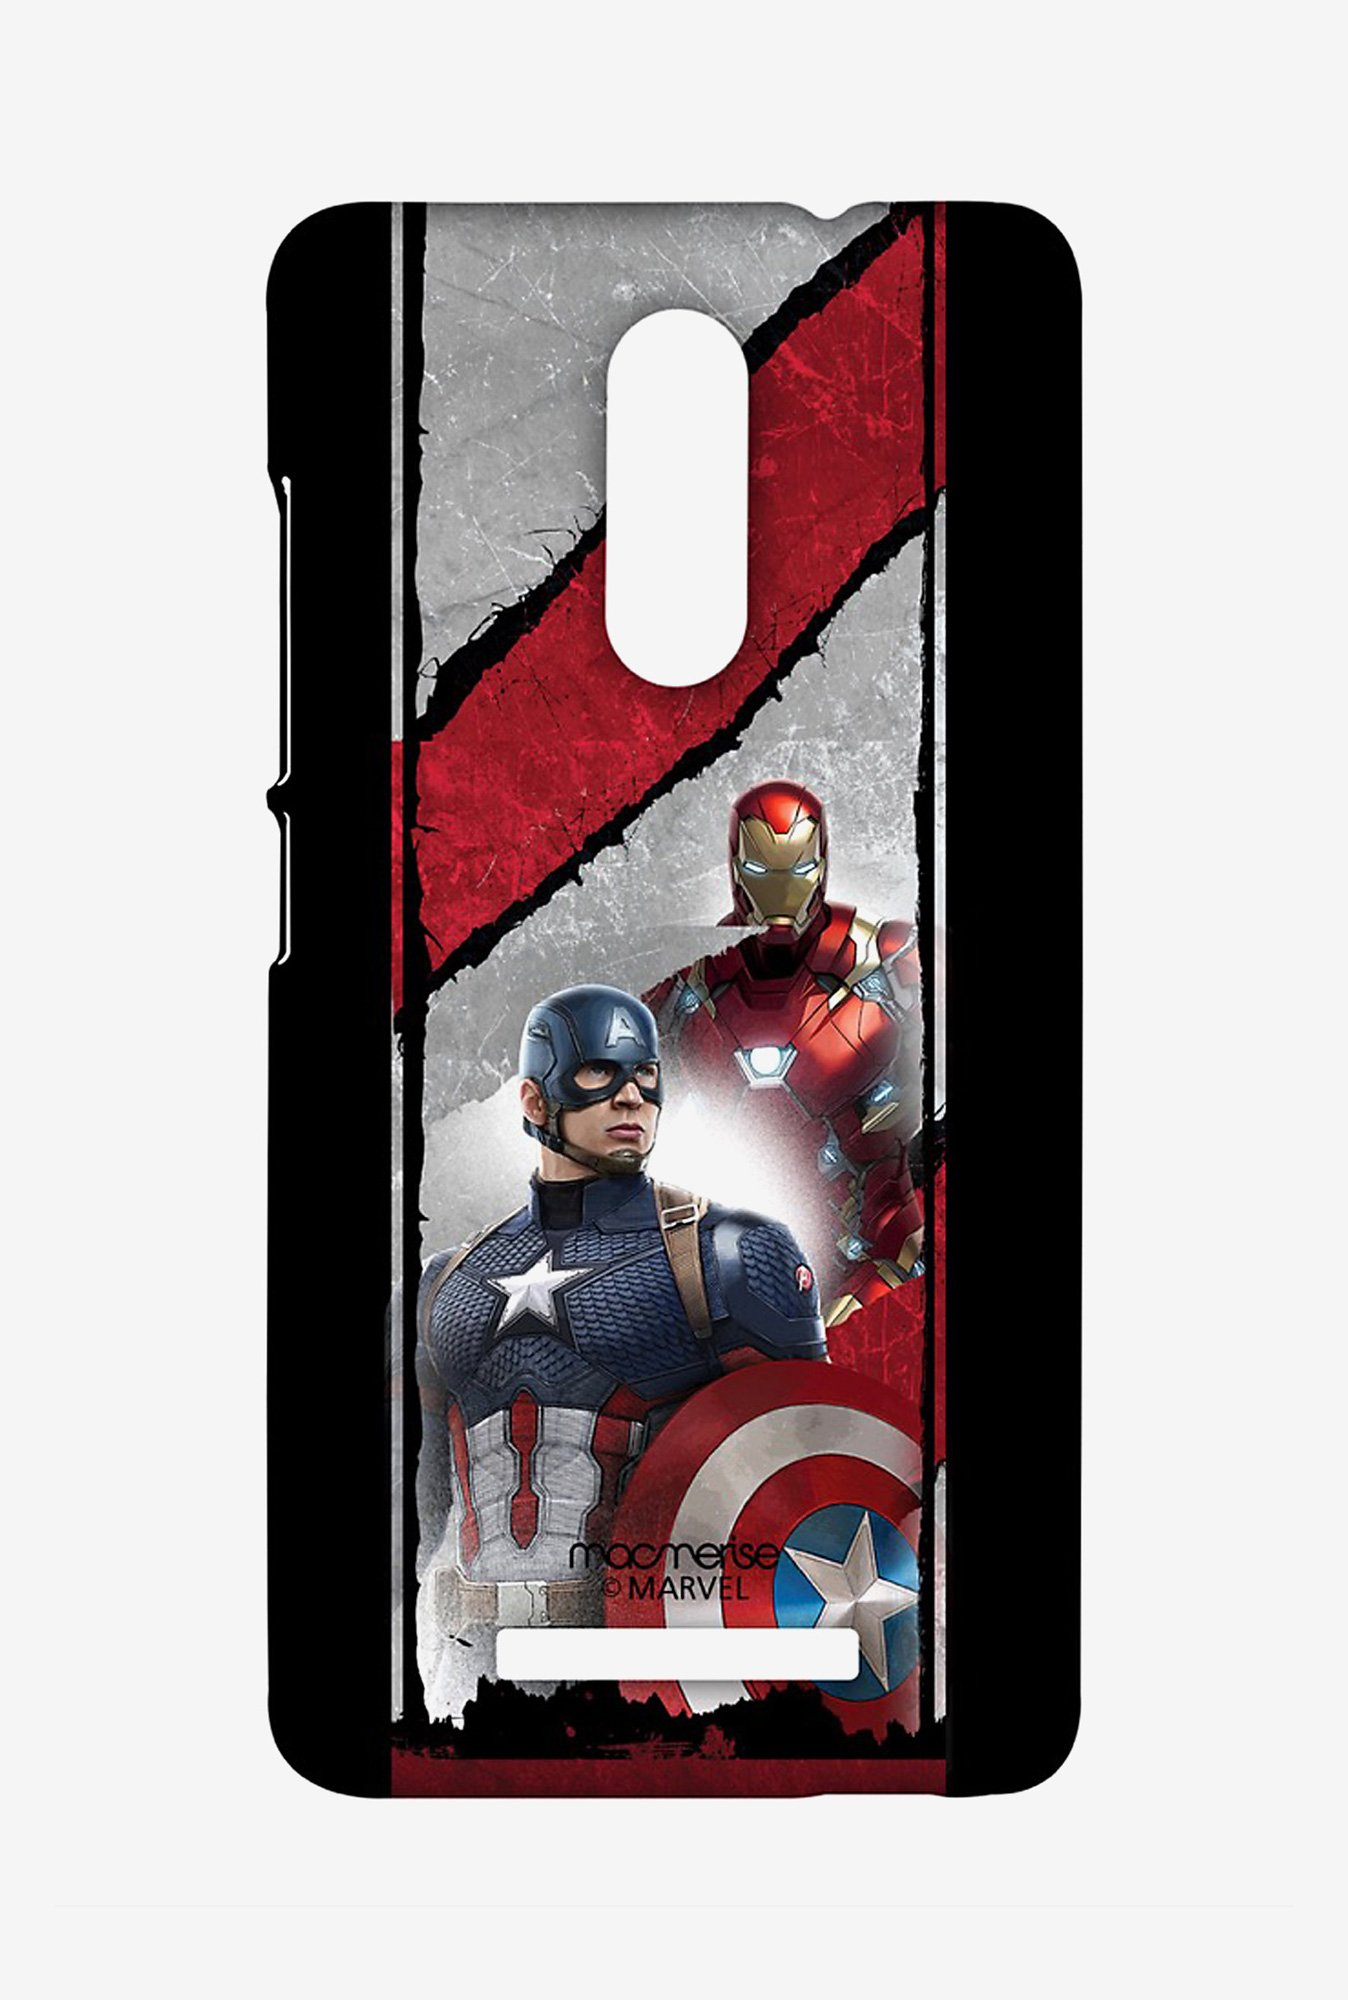 Macmerise XACN3SMM0620 The Civil War Sublime Case for Xiaomi Redmi Note 3